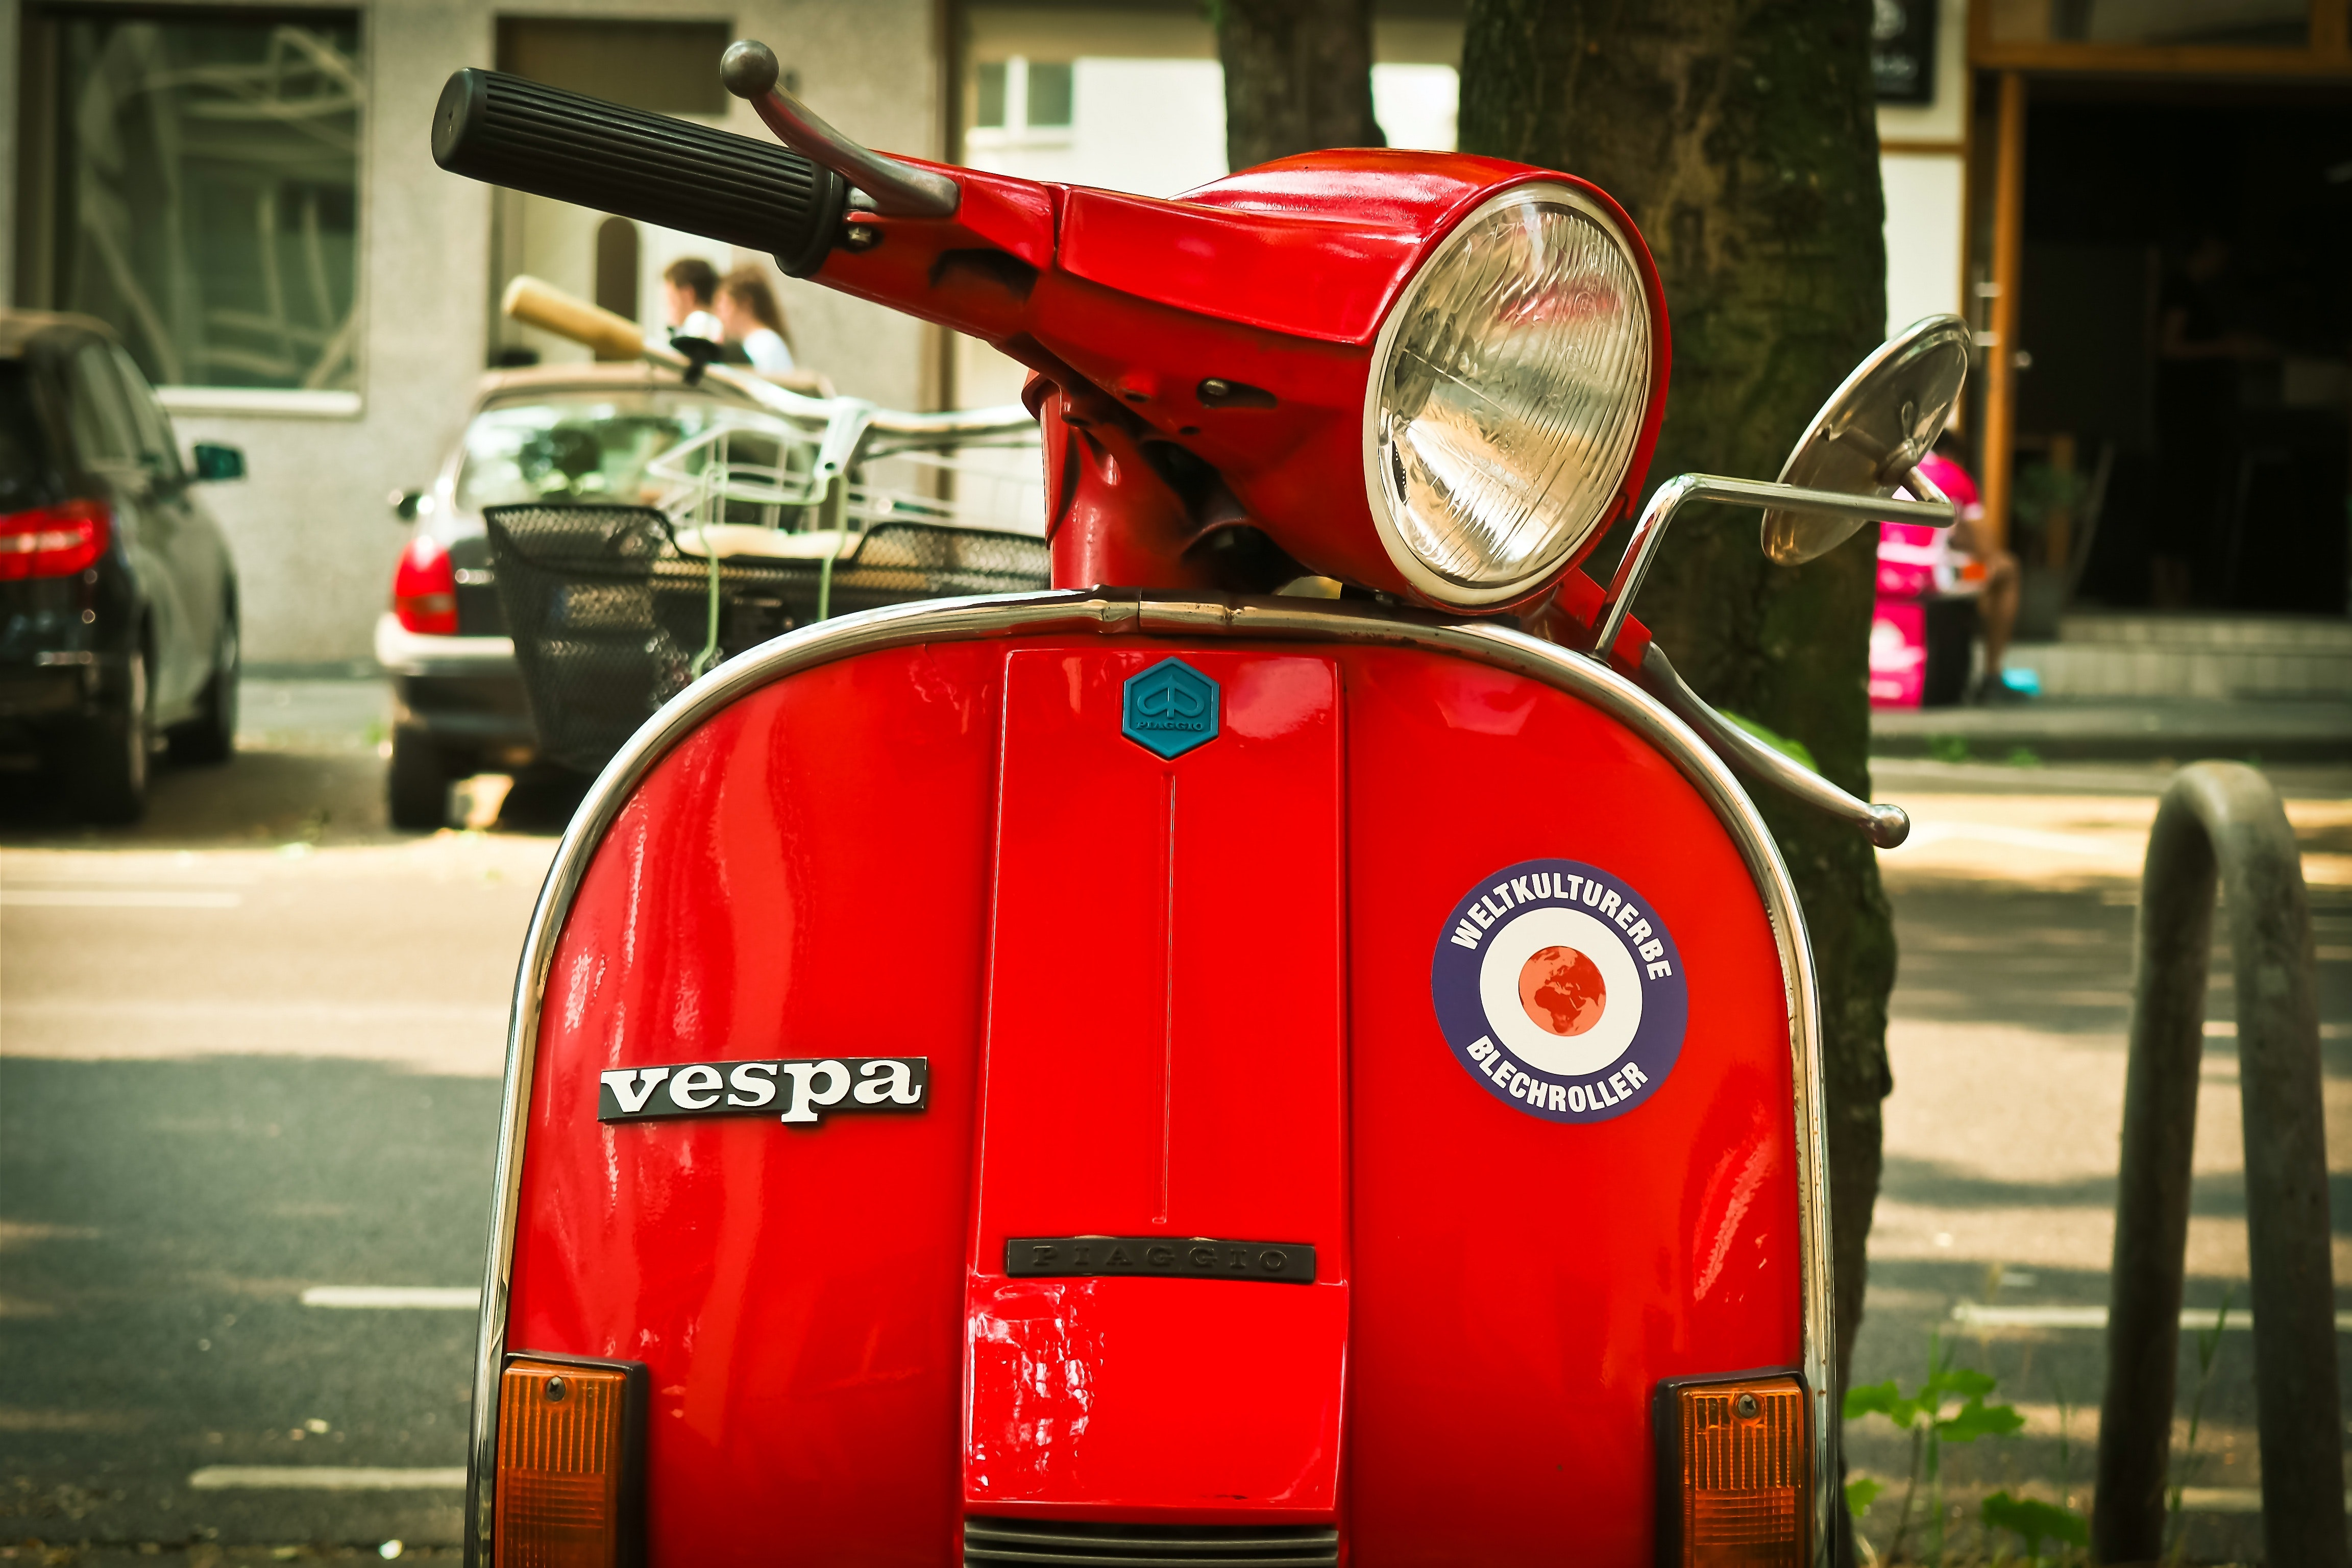 Red vespa motor scooter parked near tree during daytime photo